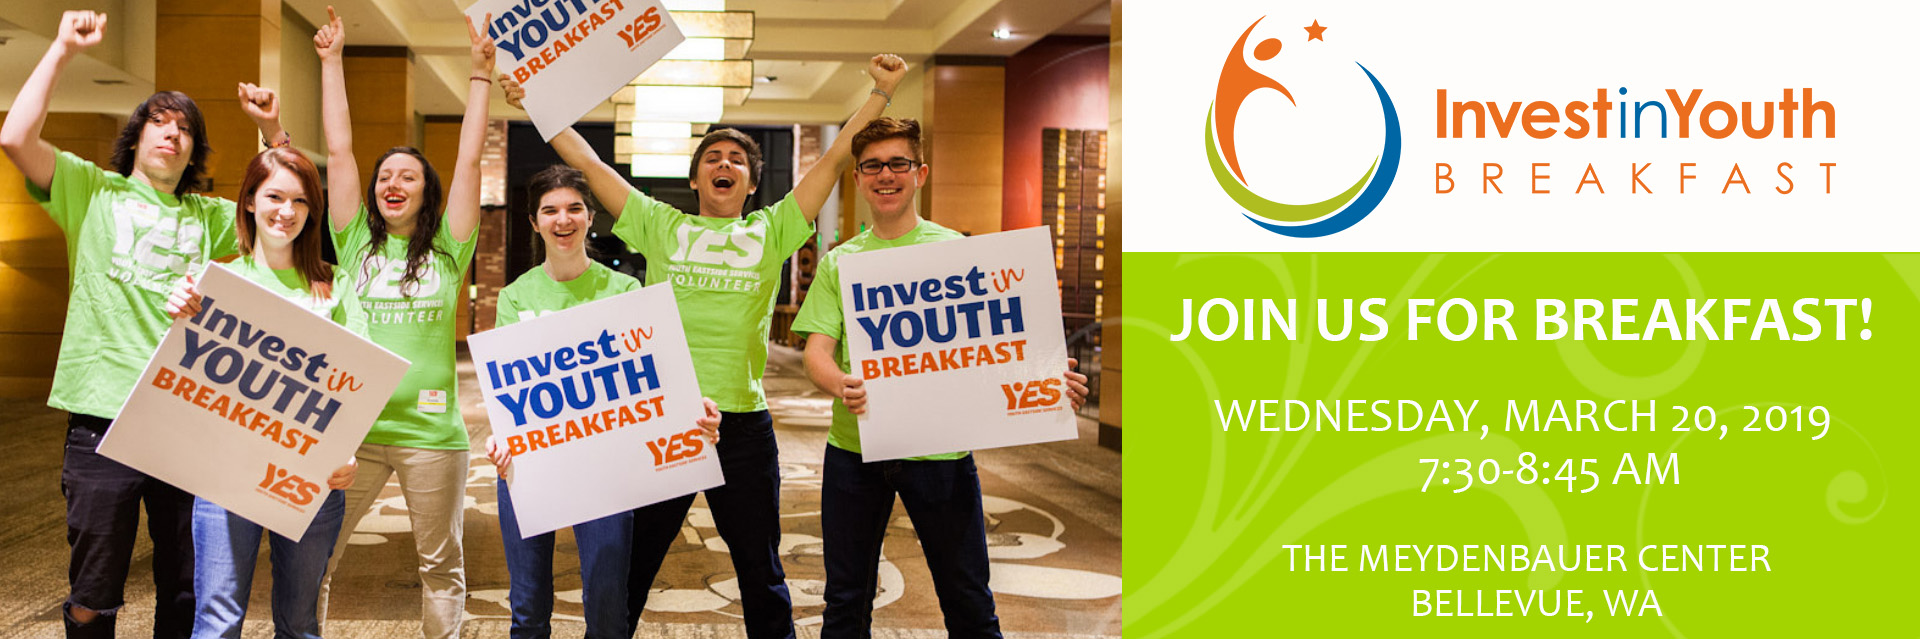 Join YES for the 2019 Invest in Youth Breakfast